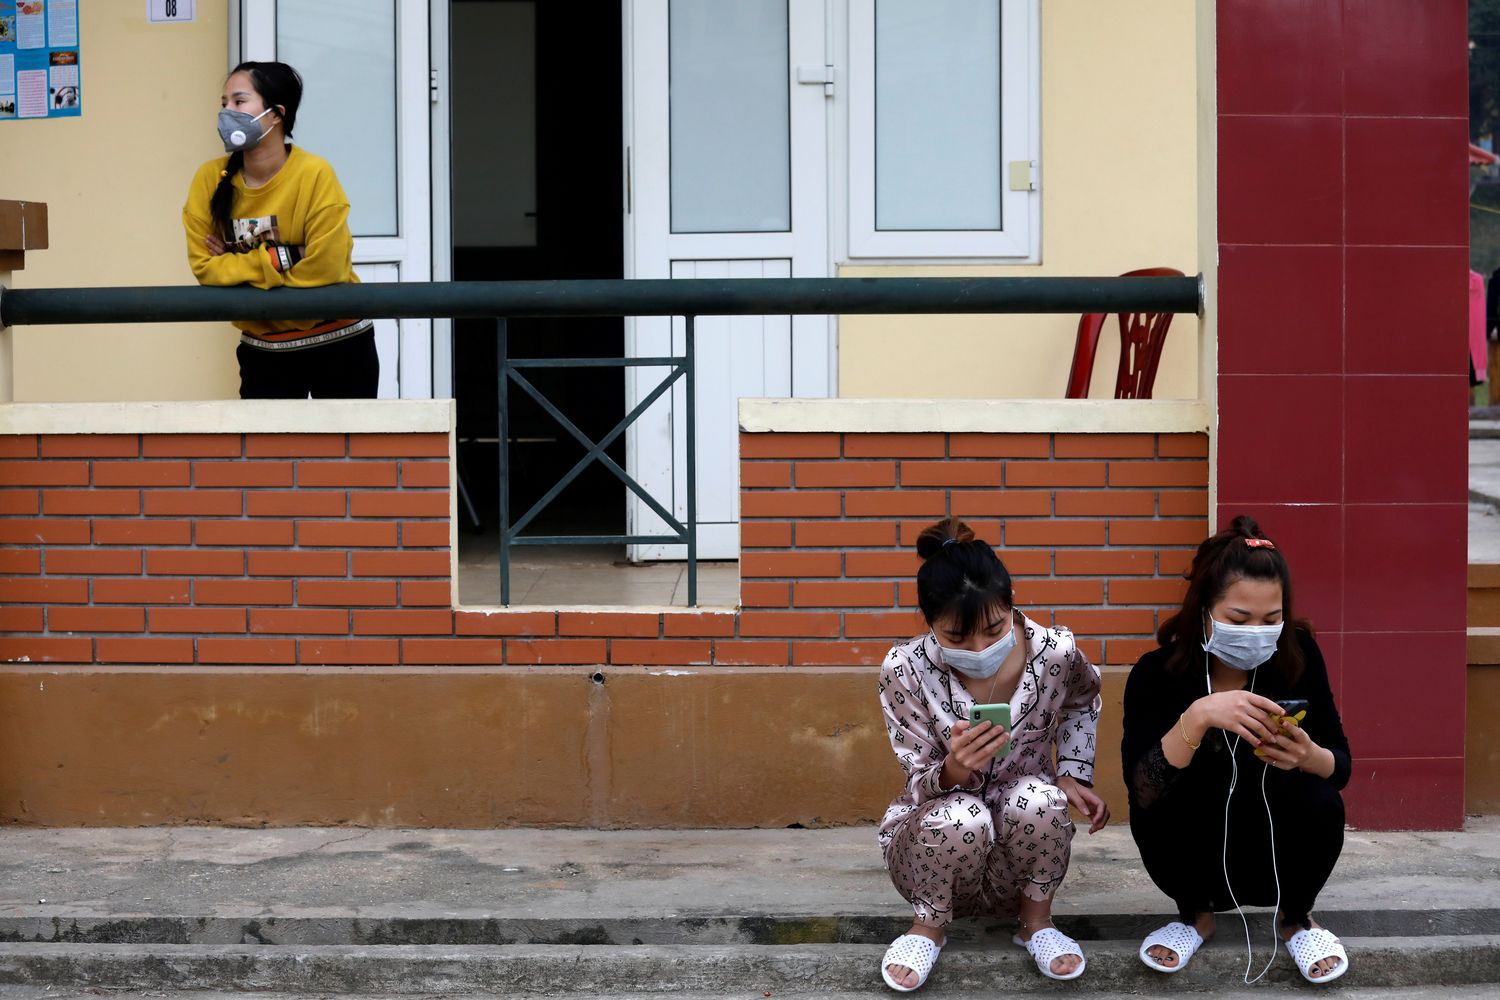 Vietnamese people who come back from China are seen inside a quarantine area at a military base in Lang Son province, Vietnam, on Feb 20. (Reuters photo)